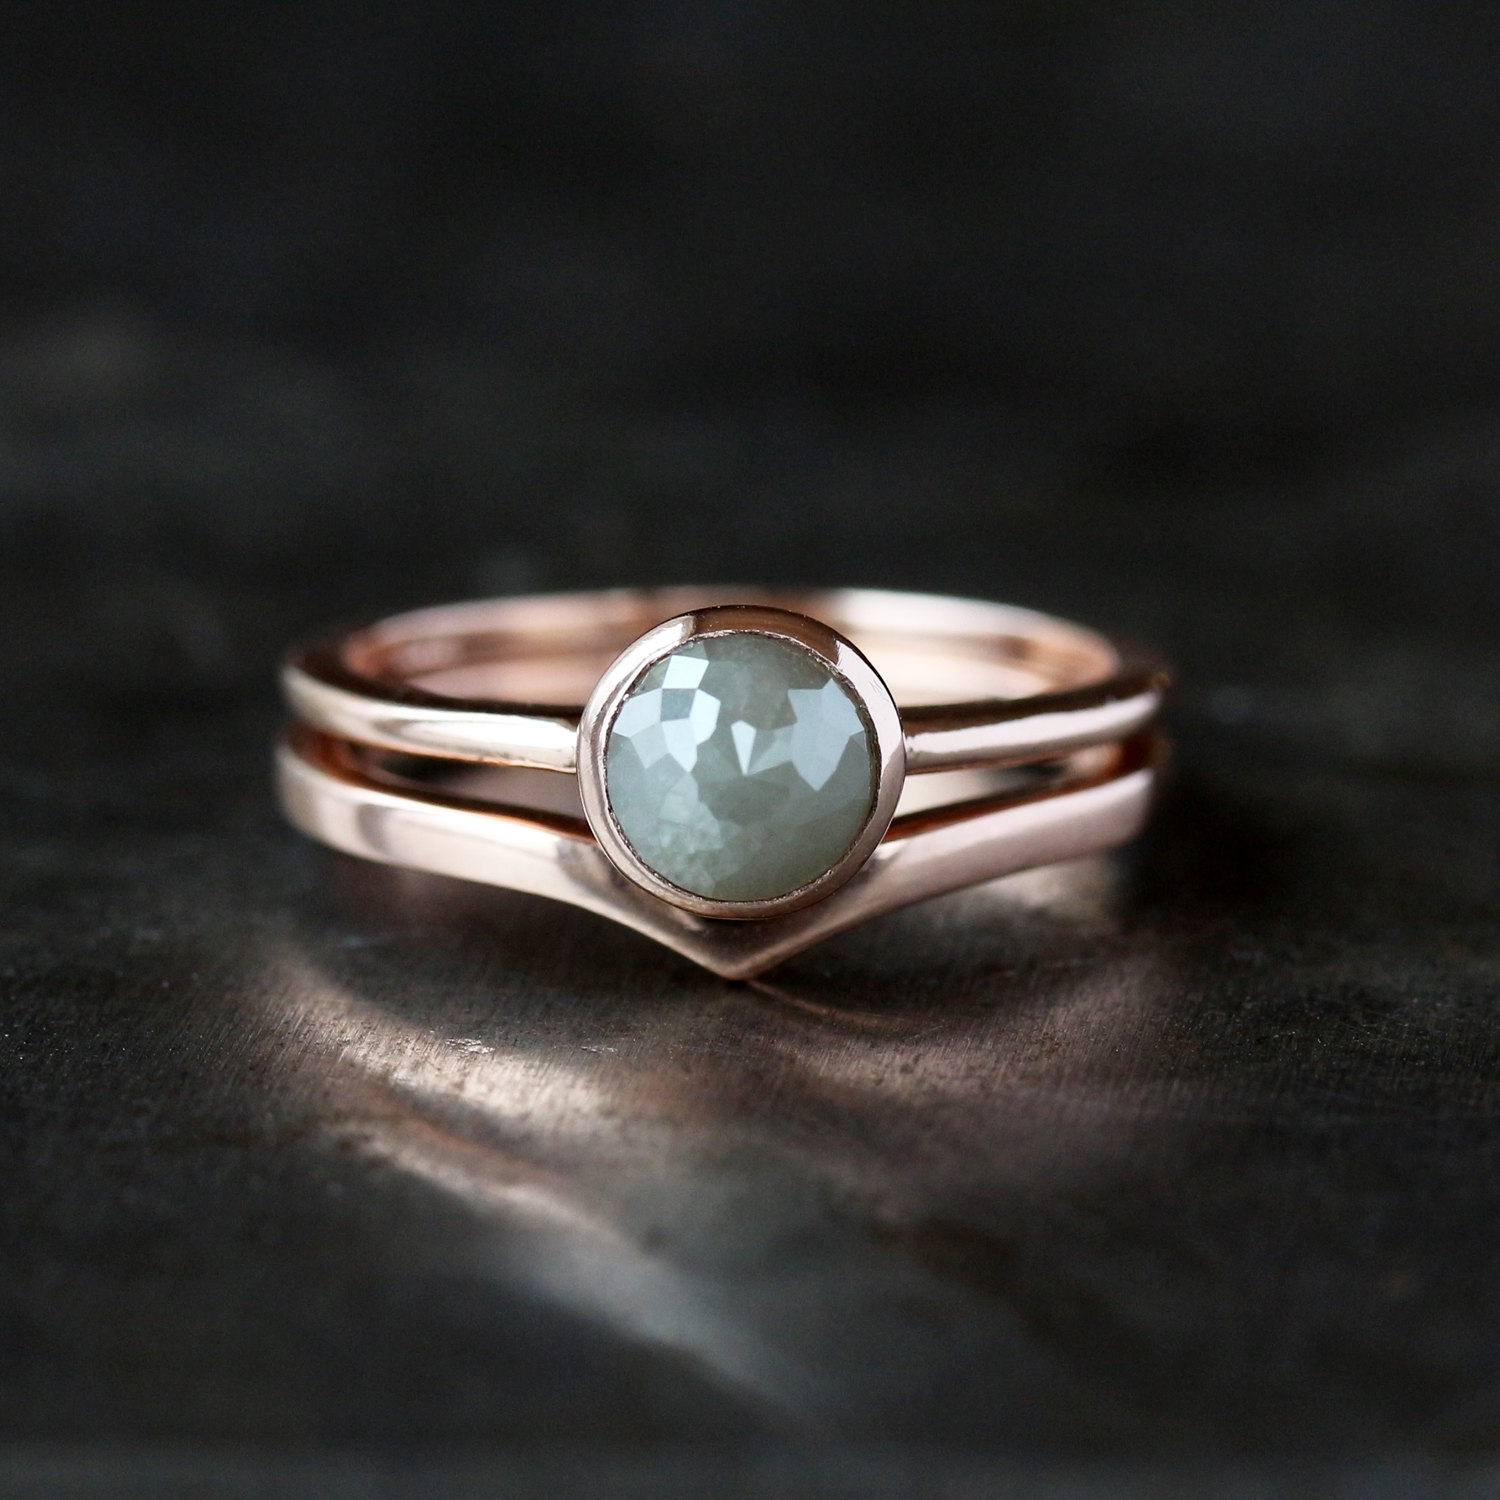 Chevron Wedding Band, 14K Rose Gold Wedding Ring, Contour Band For Current Chevron Emerald Rings (View 9 of 15)